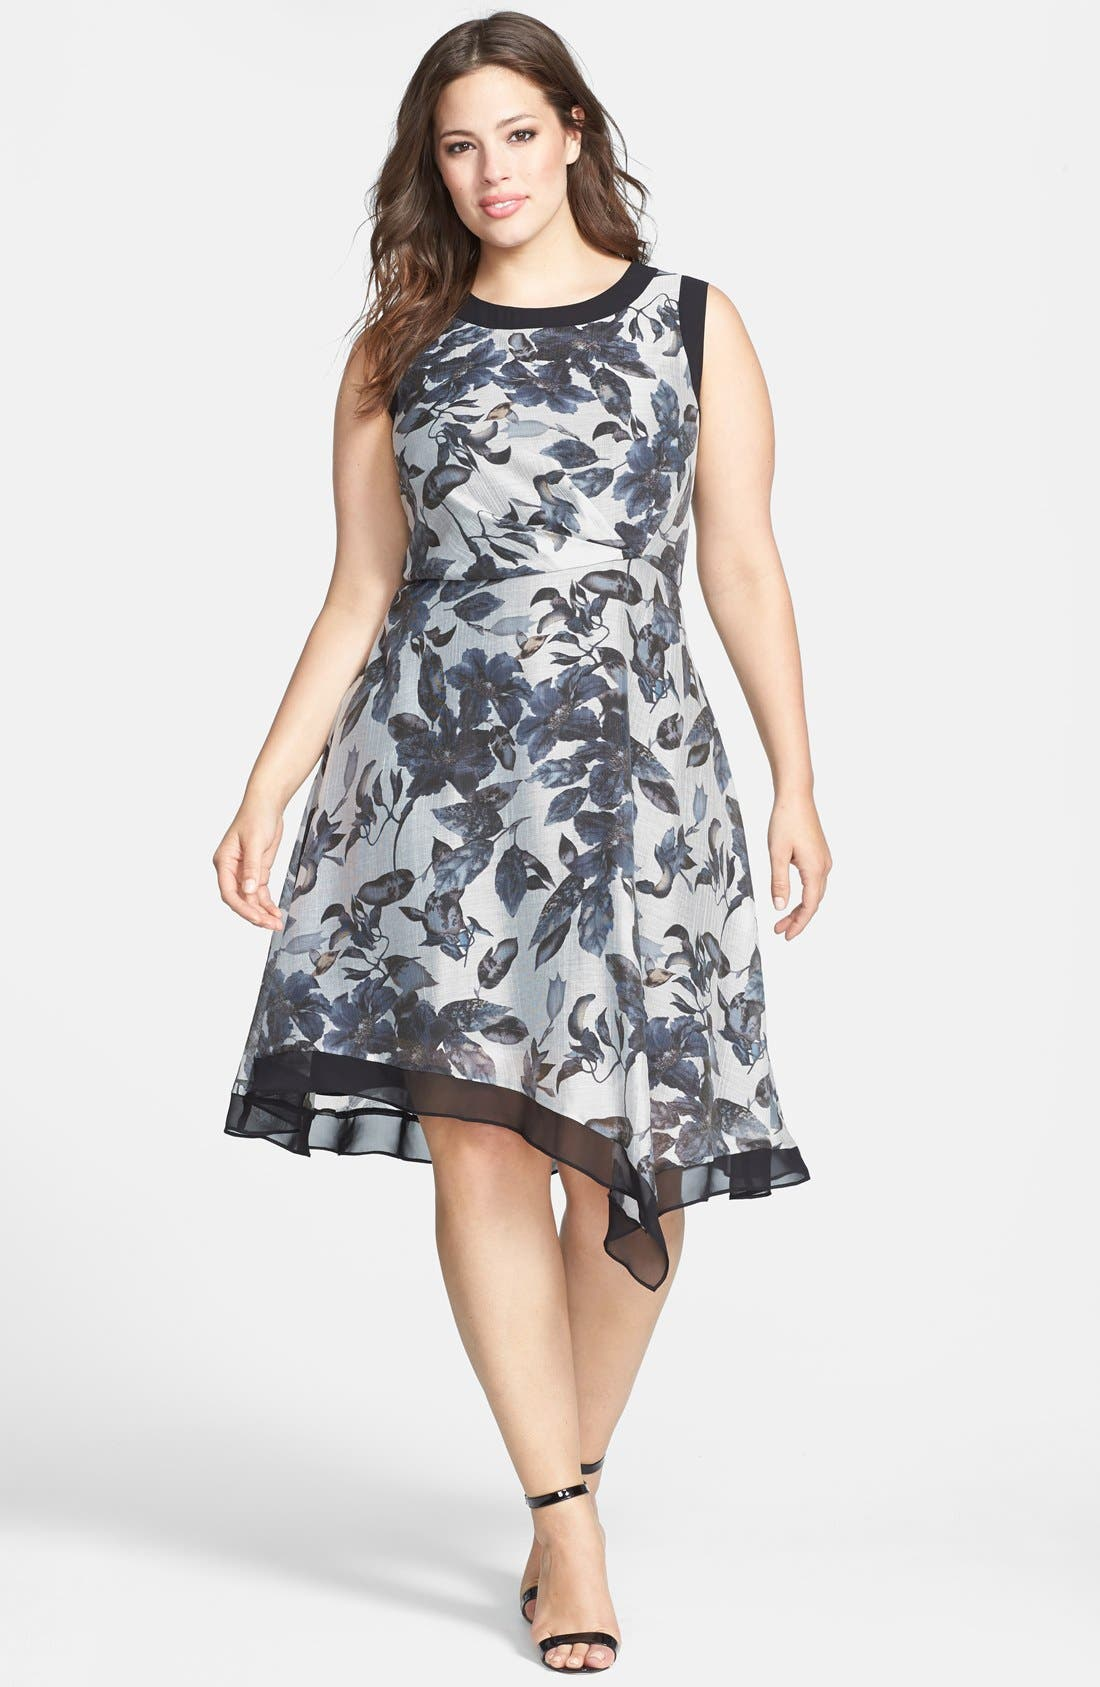 Main Image - Adrianna Papell Contrast Trim Print Sleeveless Dress (Plus Size)